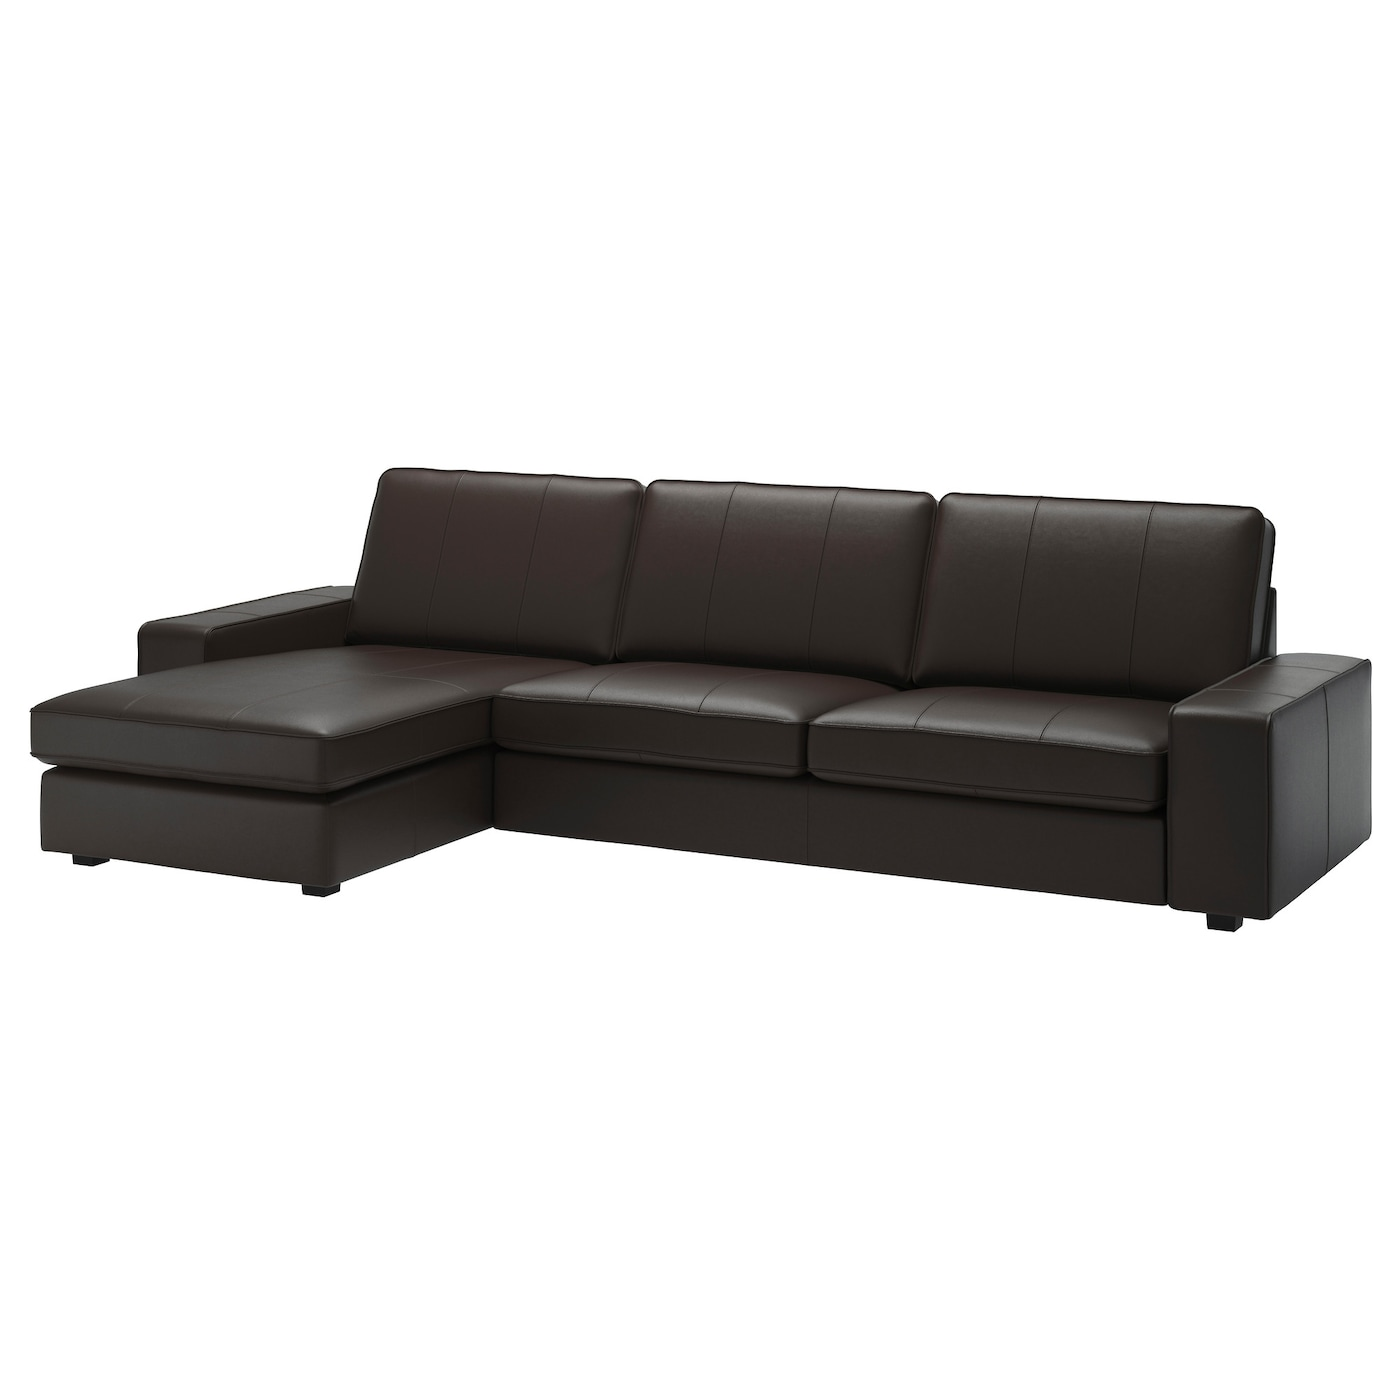 Kivik 4 seat sofa with chaise longue grann bomstad dark for Sofa jugendzimmer ikea